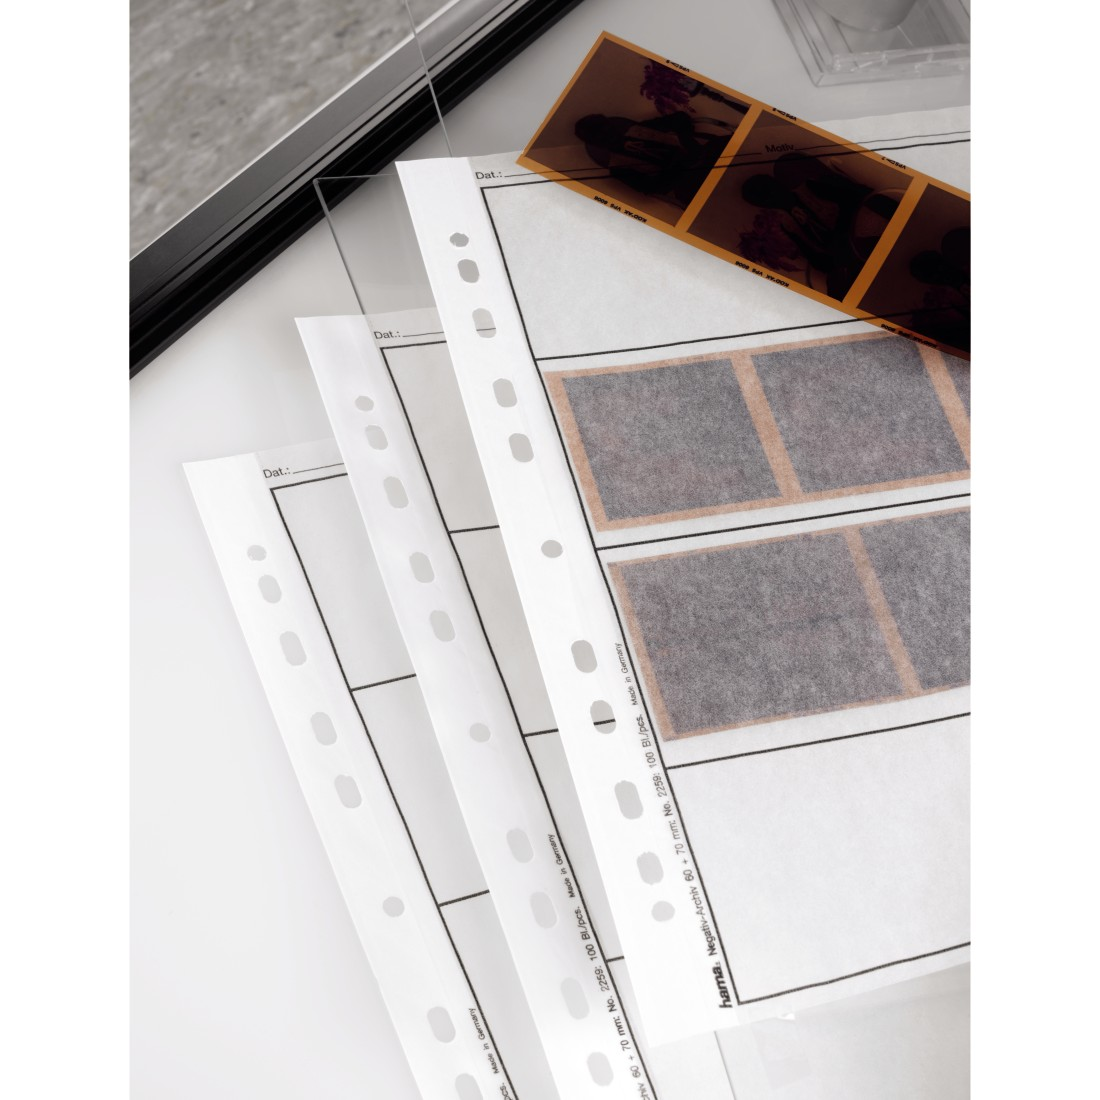 awx High-Res Appliance - Hama, Negative Sleeves, Parchment, 4 Strips of 3 Negatives, 6x7 cm, 100 pcs.